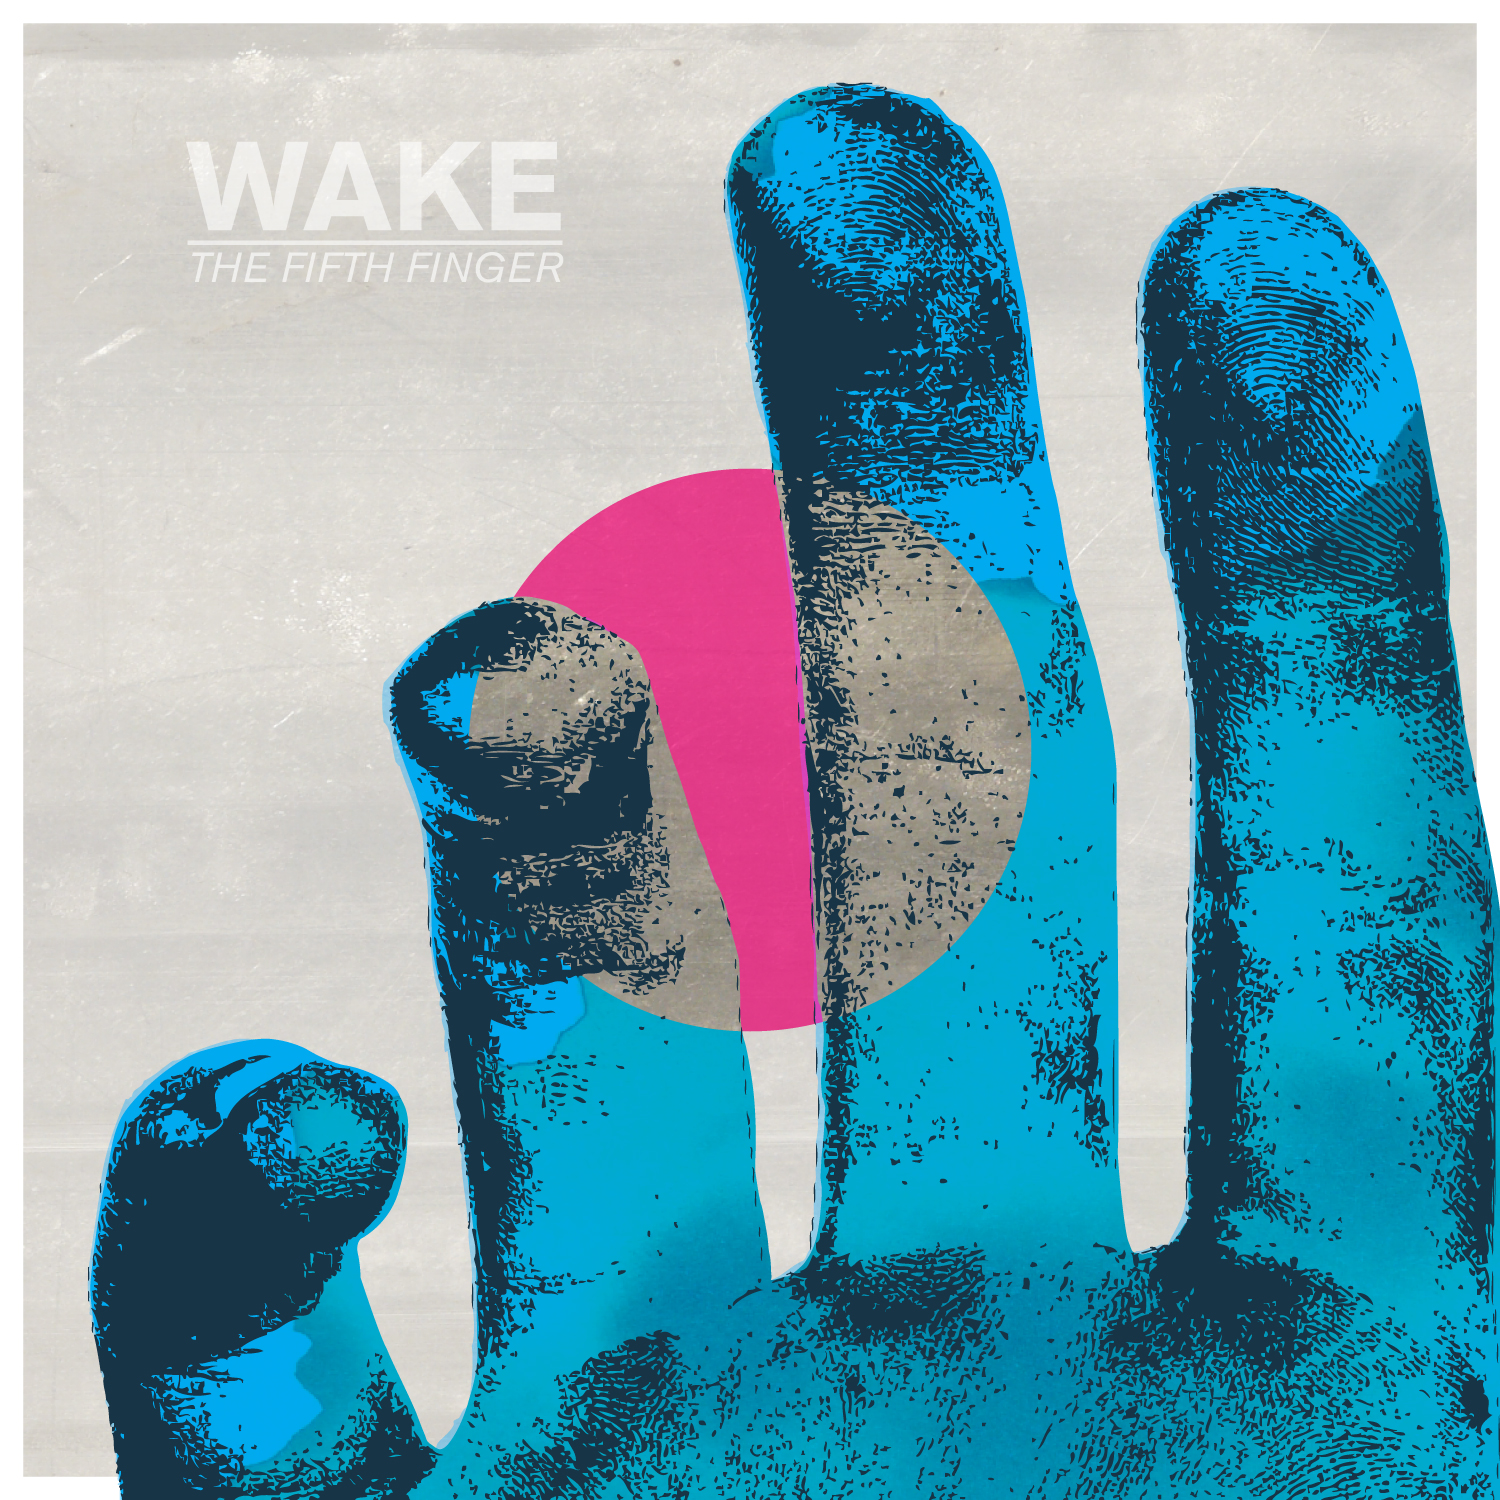 Wake – The Fifth Finger